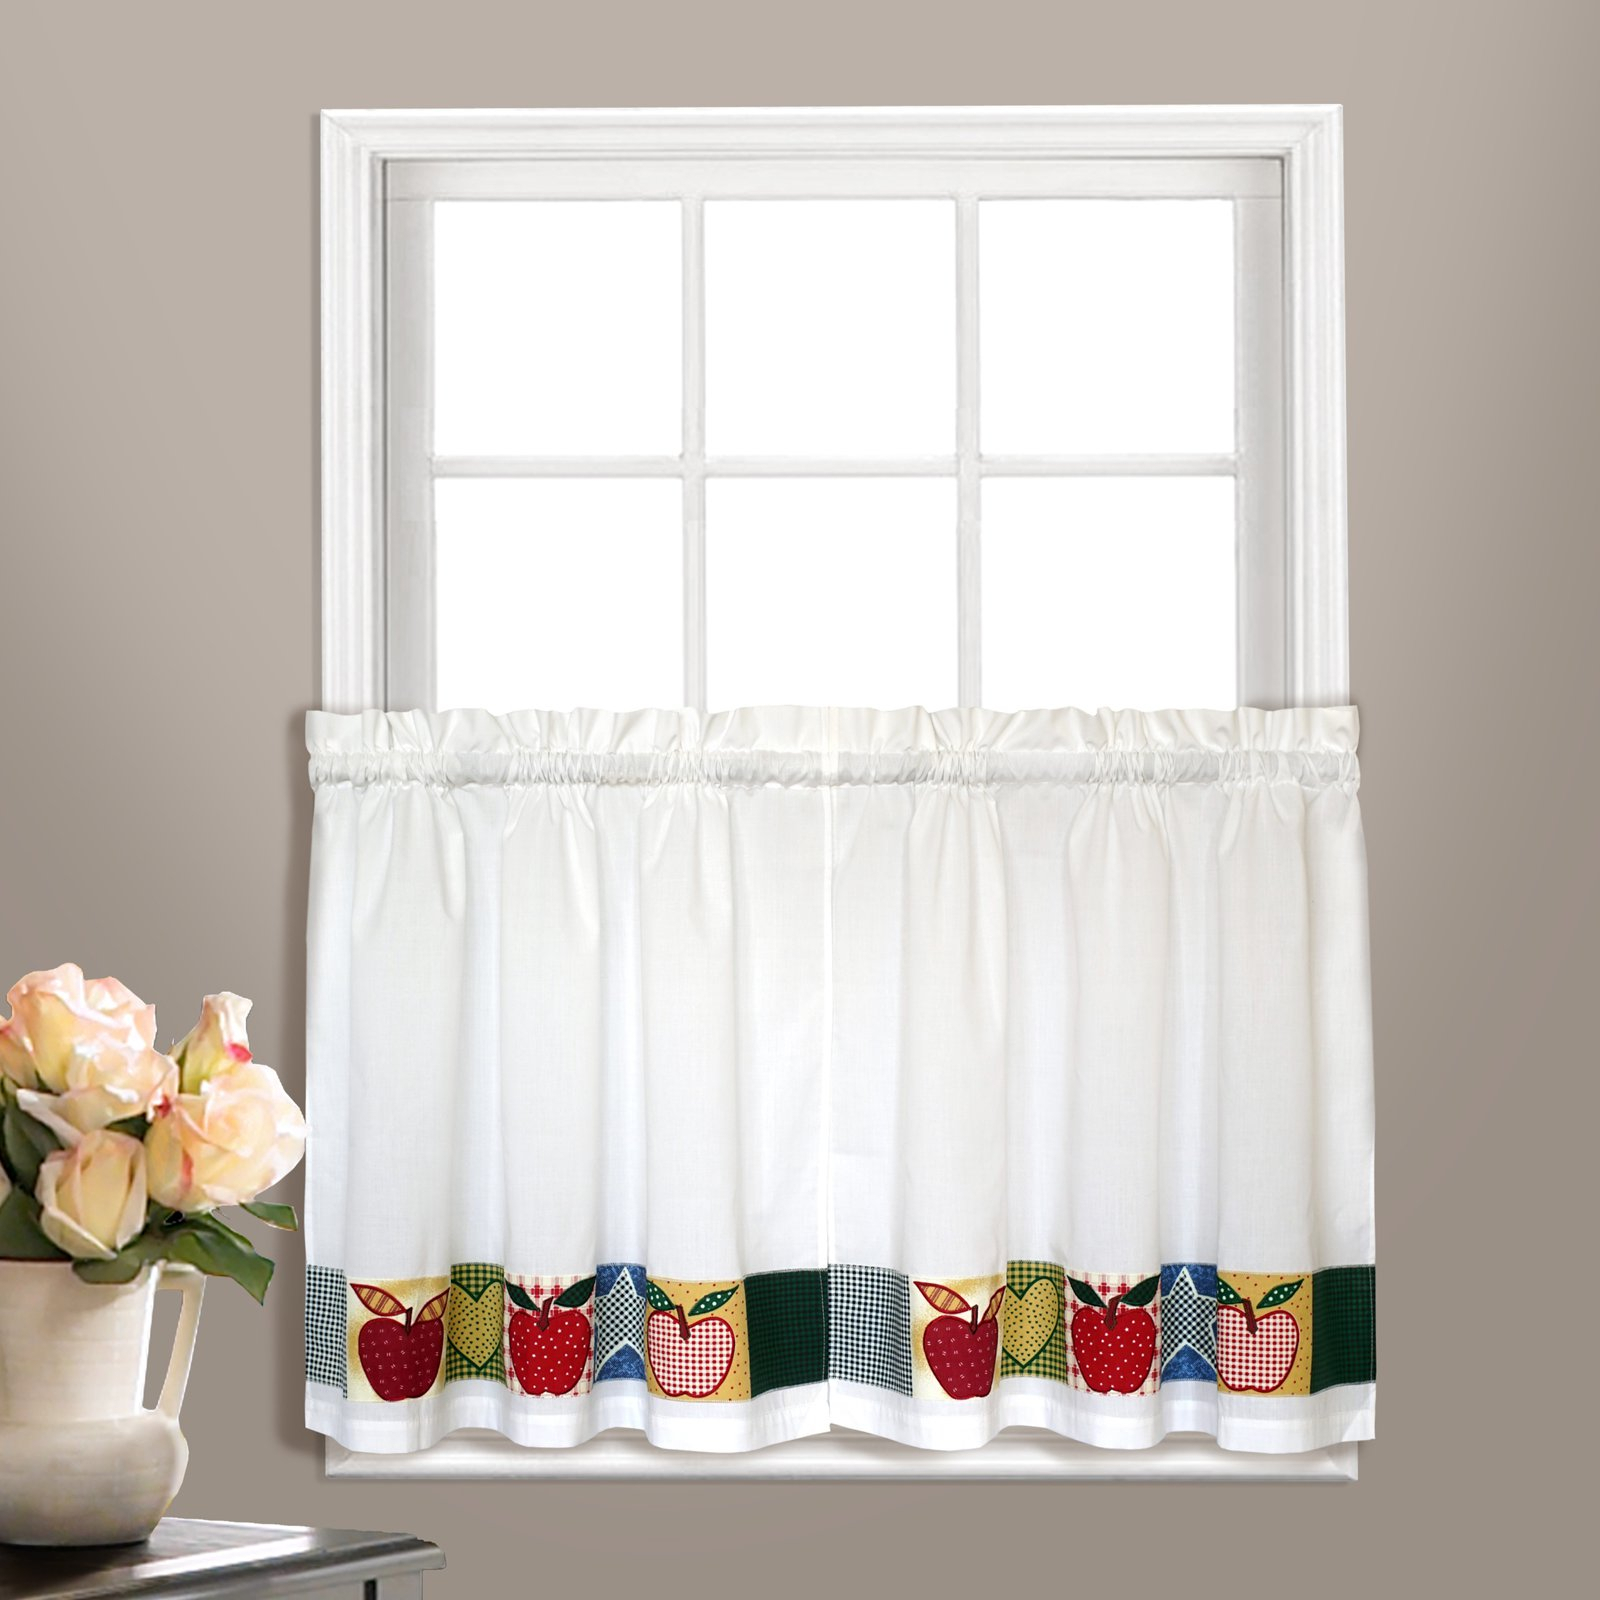 United Curtain Appleton Kitchen Tiers   Products In 2019 Inside Dakota Window Curtain Tier Pair And Valance Sets (View 20 of 20)